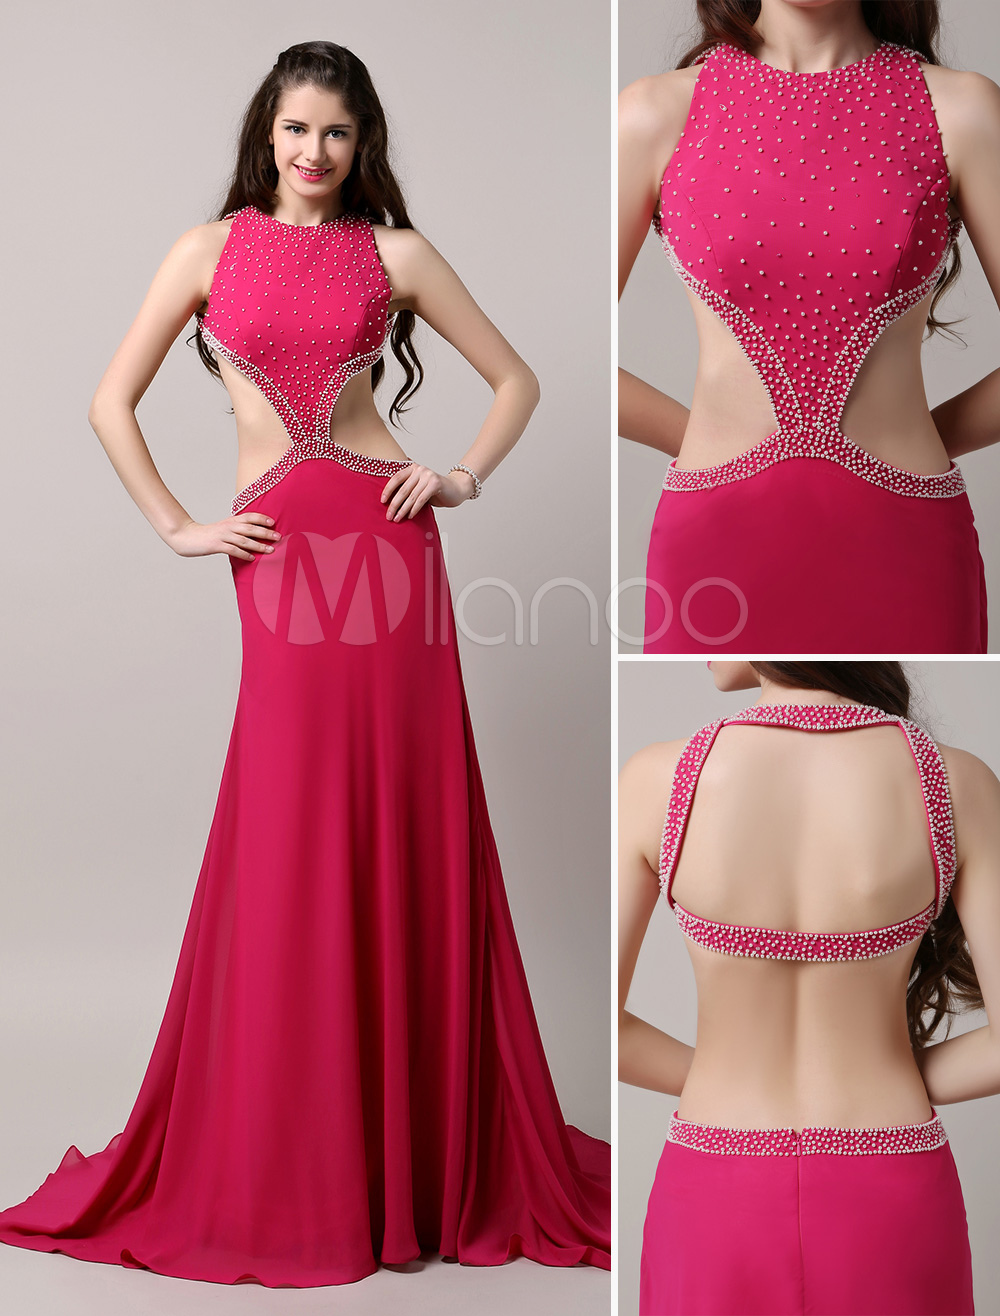 Hot Pink Evening Dress Backless Side Cut Out Party Dress Beading Chiffon Homecoming Dress With Sweep Train (Wedding Evening Dresses) photo